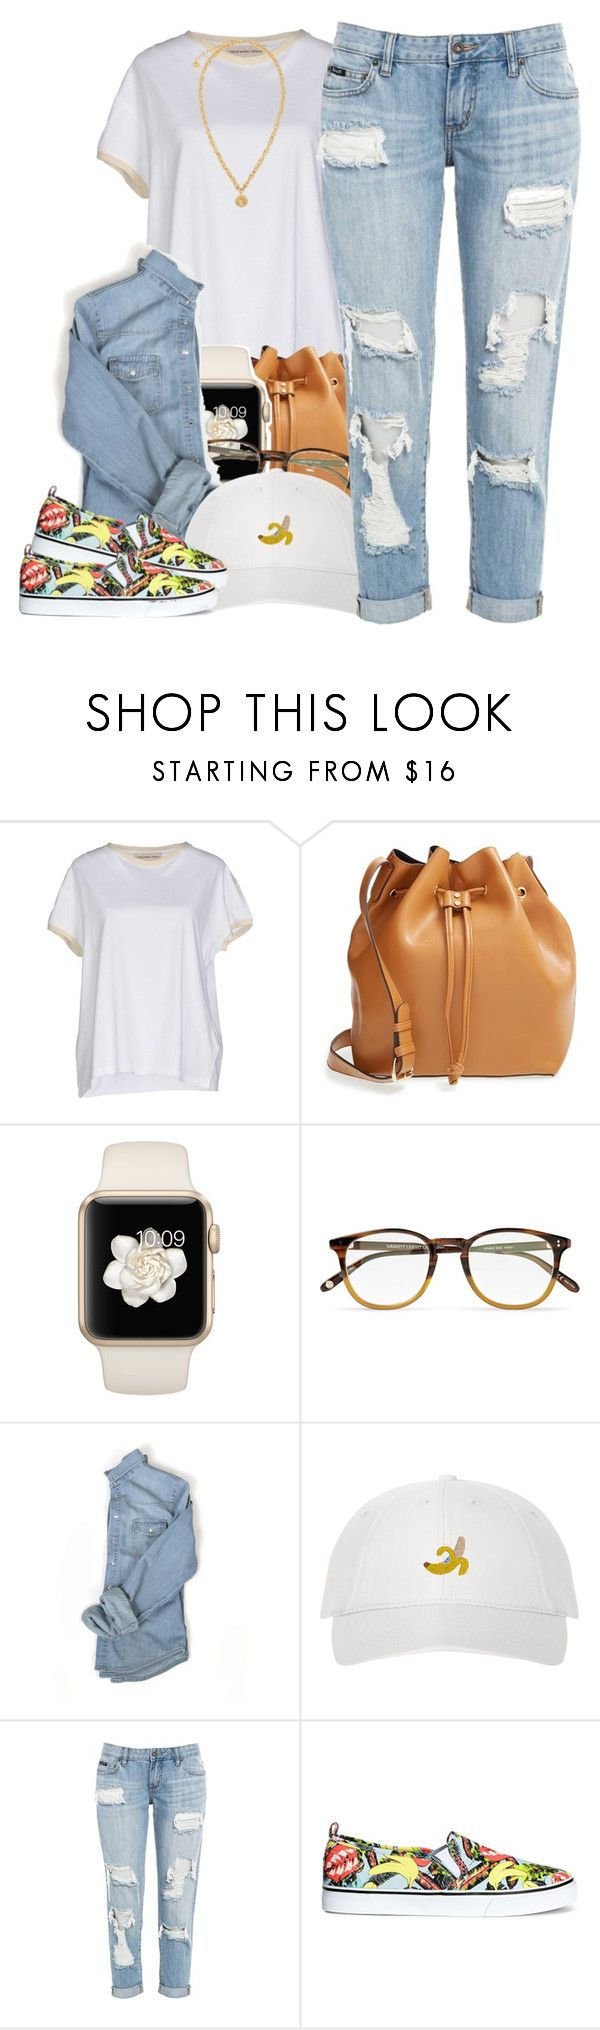 """""""School Cramming"""" by msyorkieluver ❤ liked on Polyvore featuring Coast + Weber + Ahaus, Sole Society, Garrett Leight, H&M and Versace"""